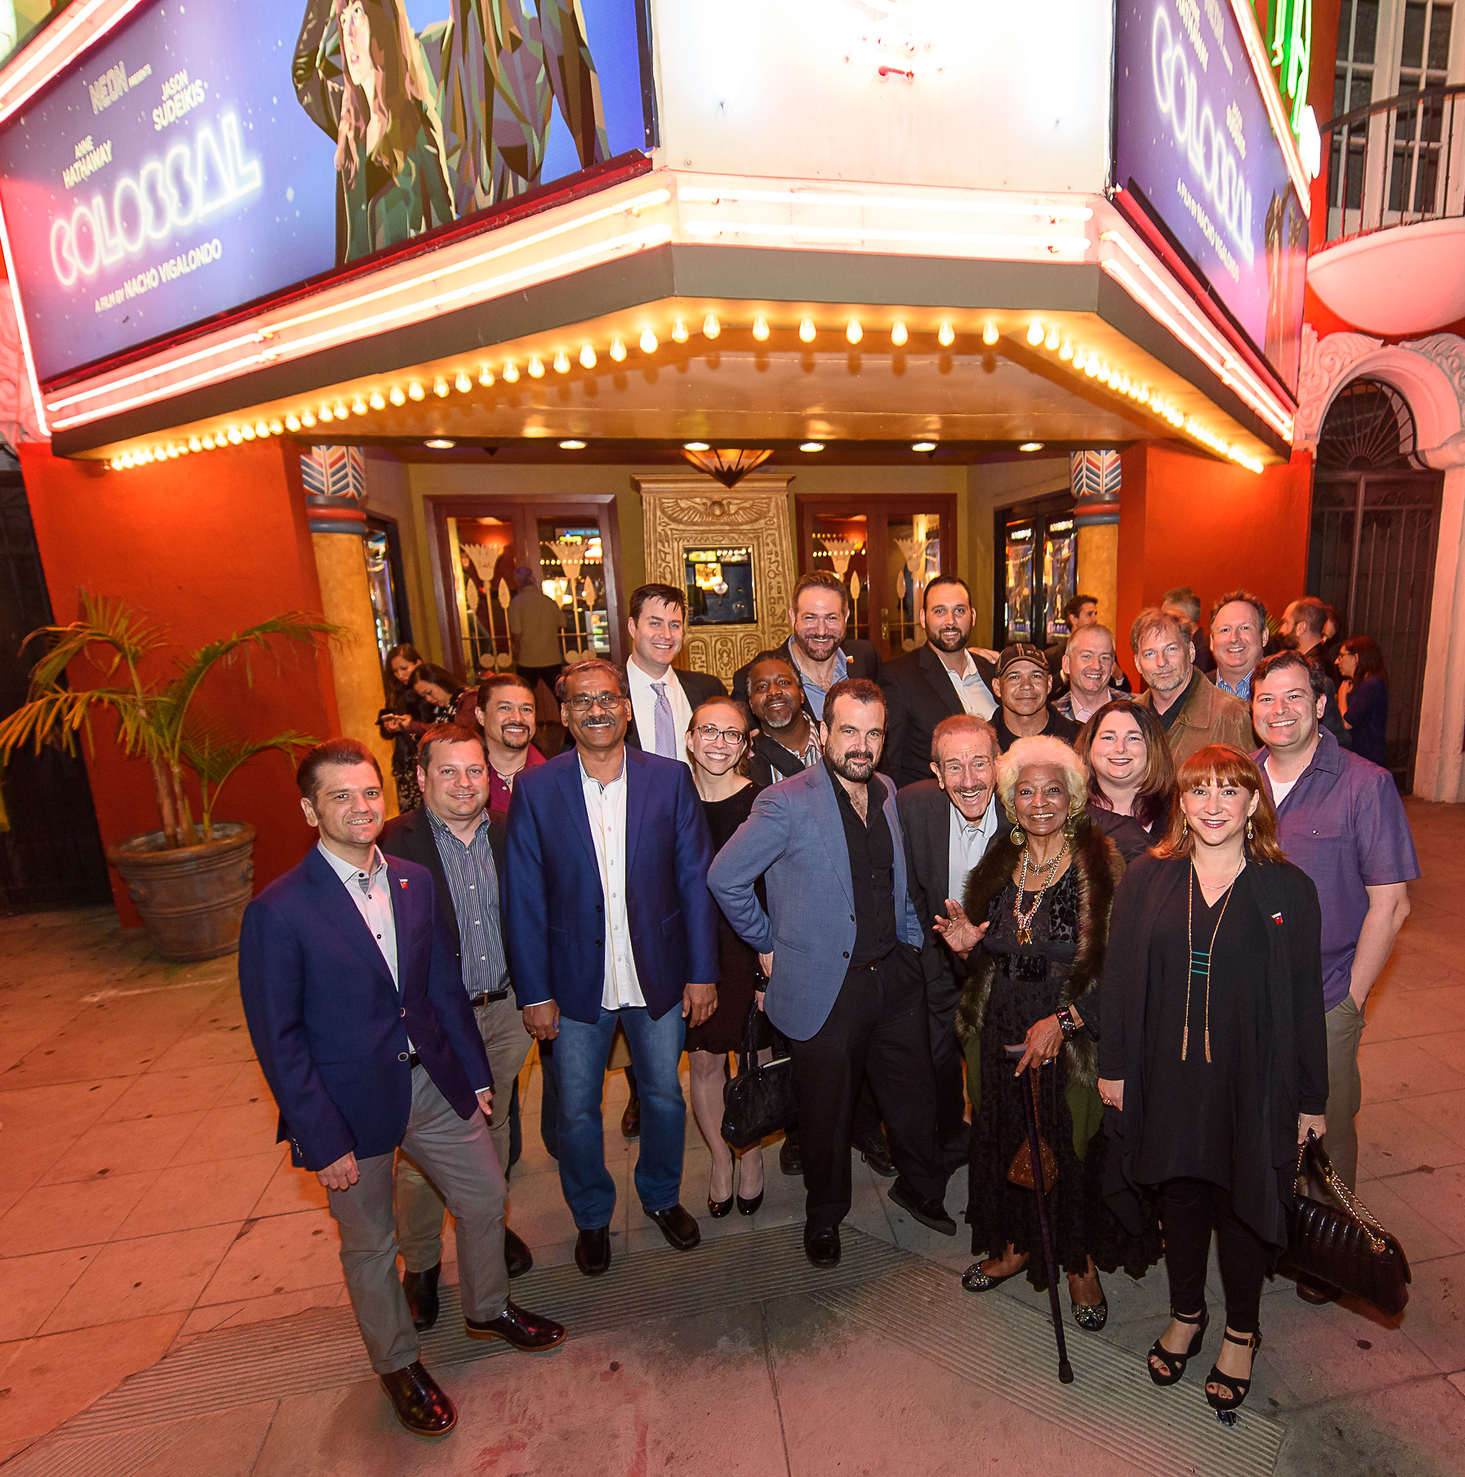 Legion M members with Nichelle Nichols and COLOSSAL Director/Writer Nacho Vigalondo